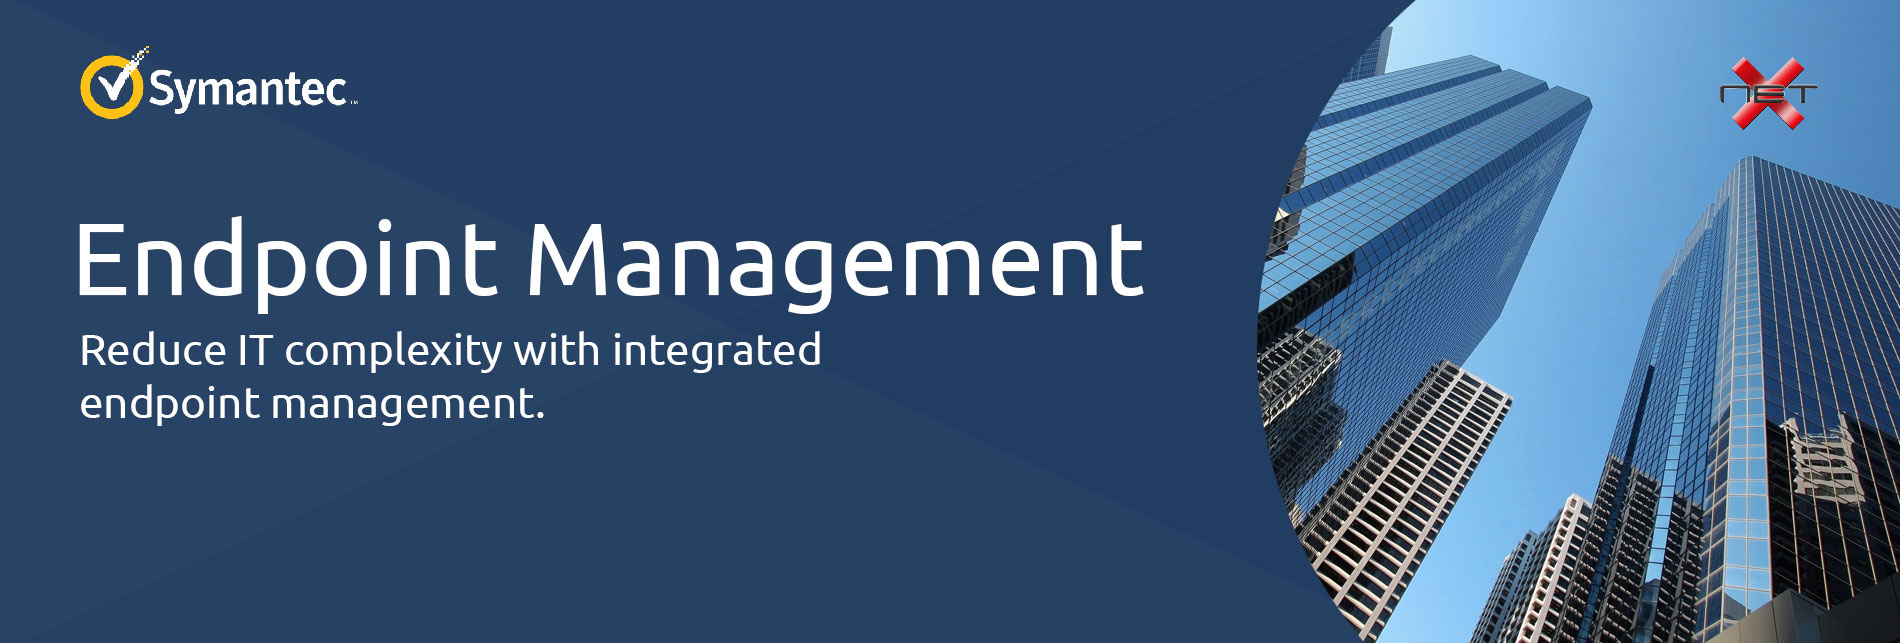 symantec-endpoint-management with netx banner